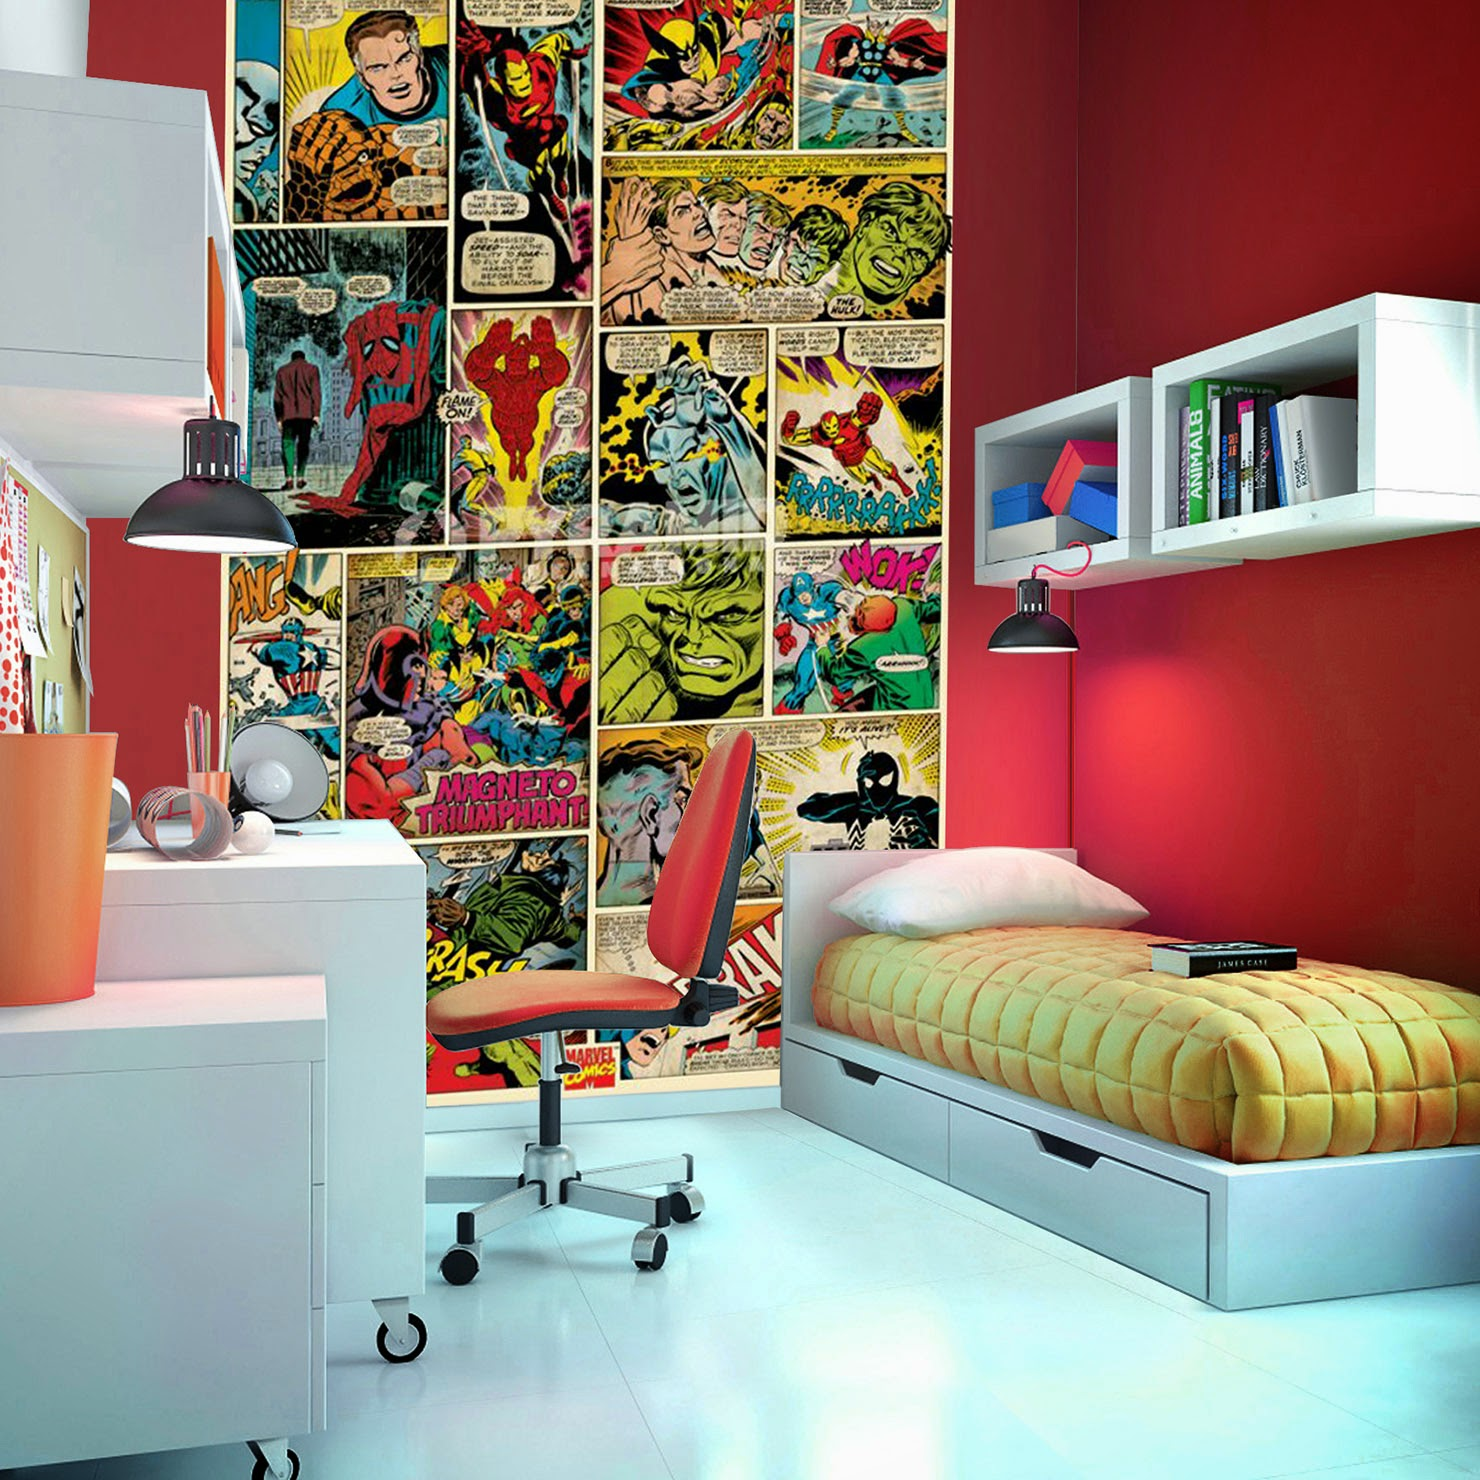 Habtaciones tema comics dormitorios colores y estilos for Comic book wallpaper mural